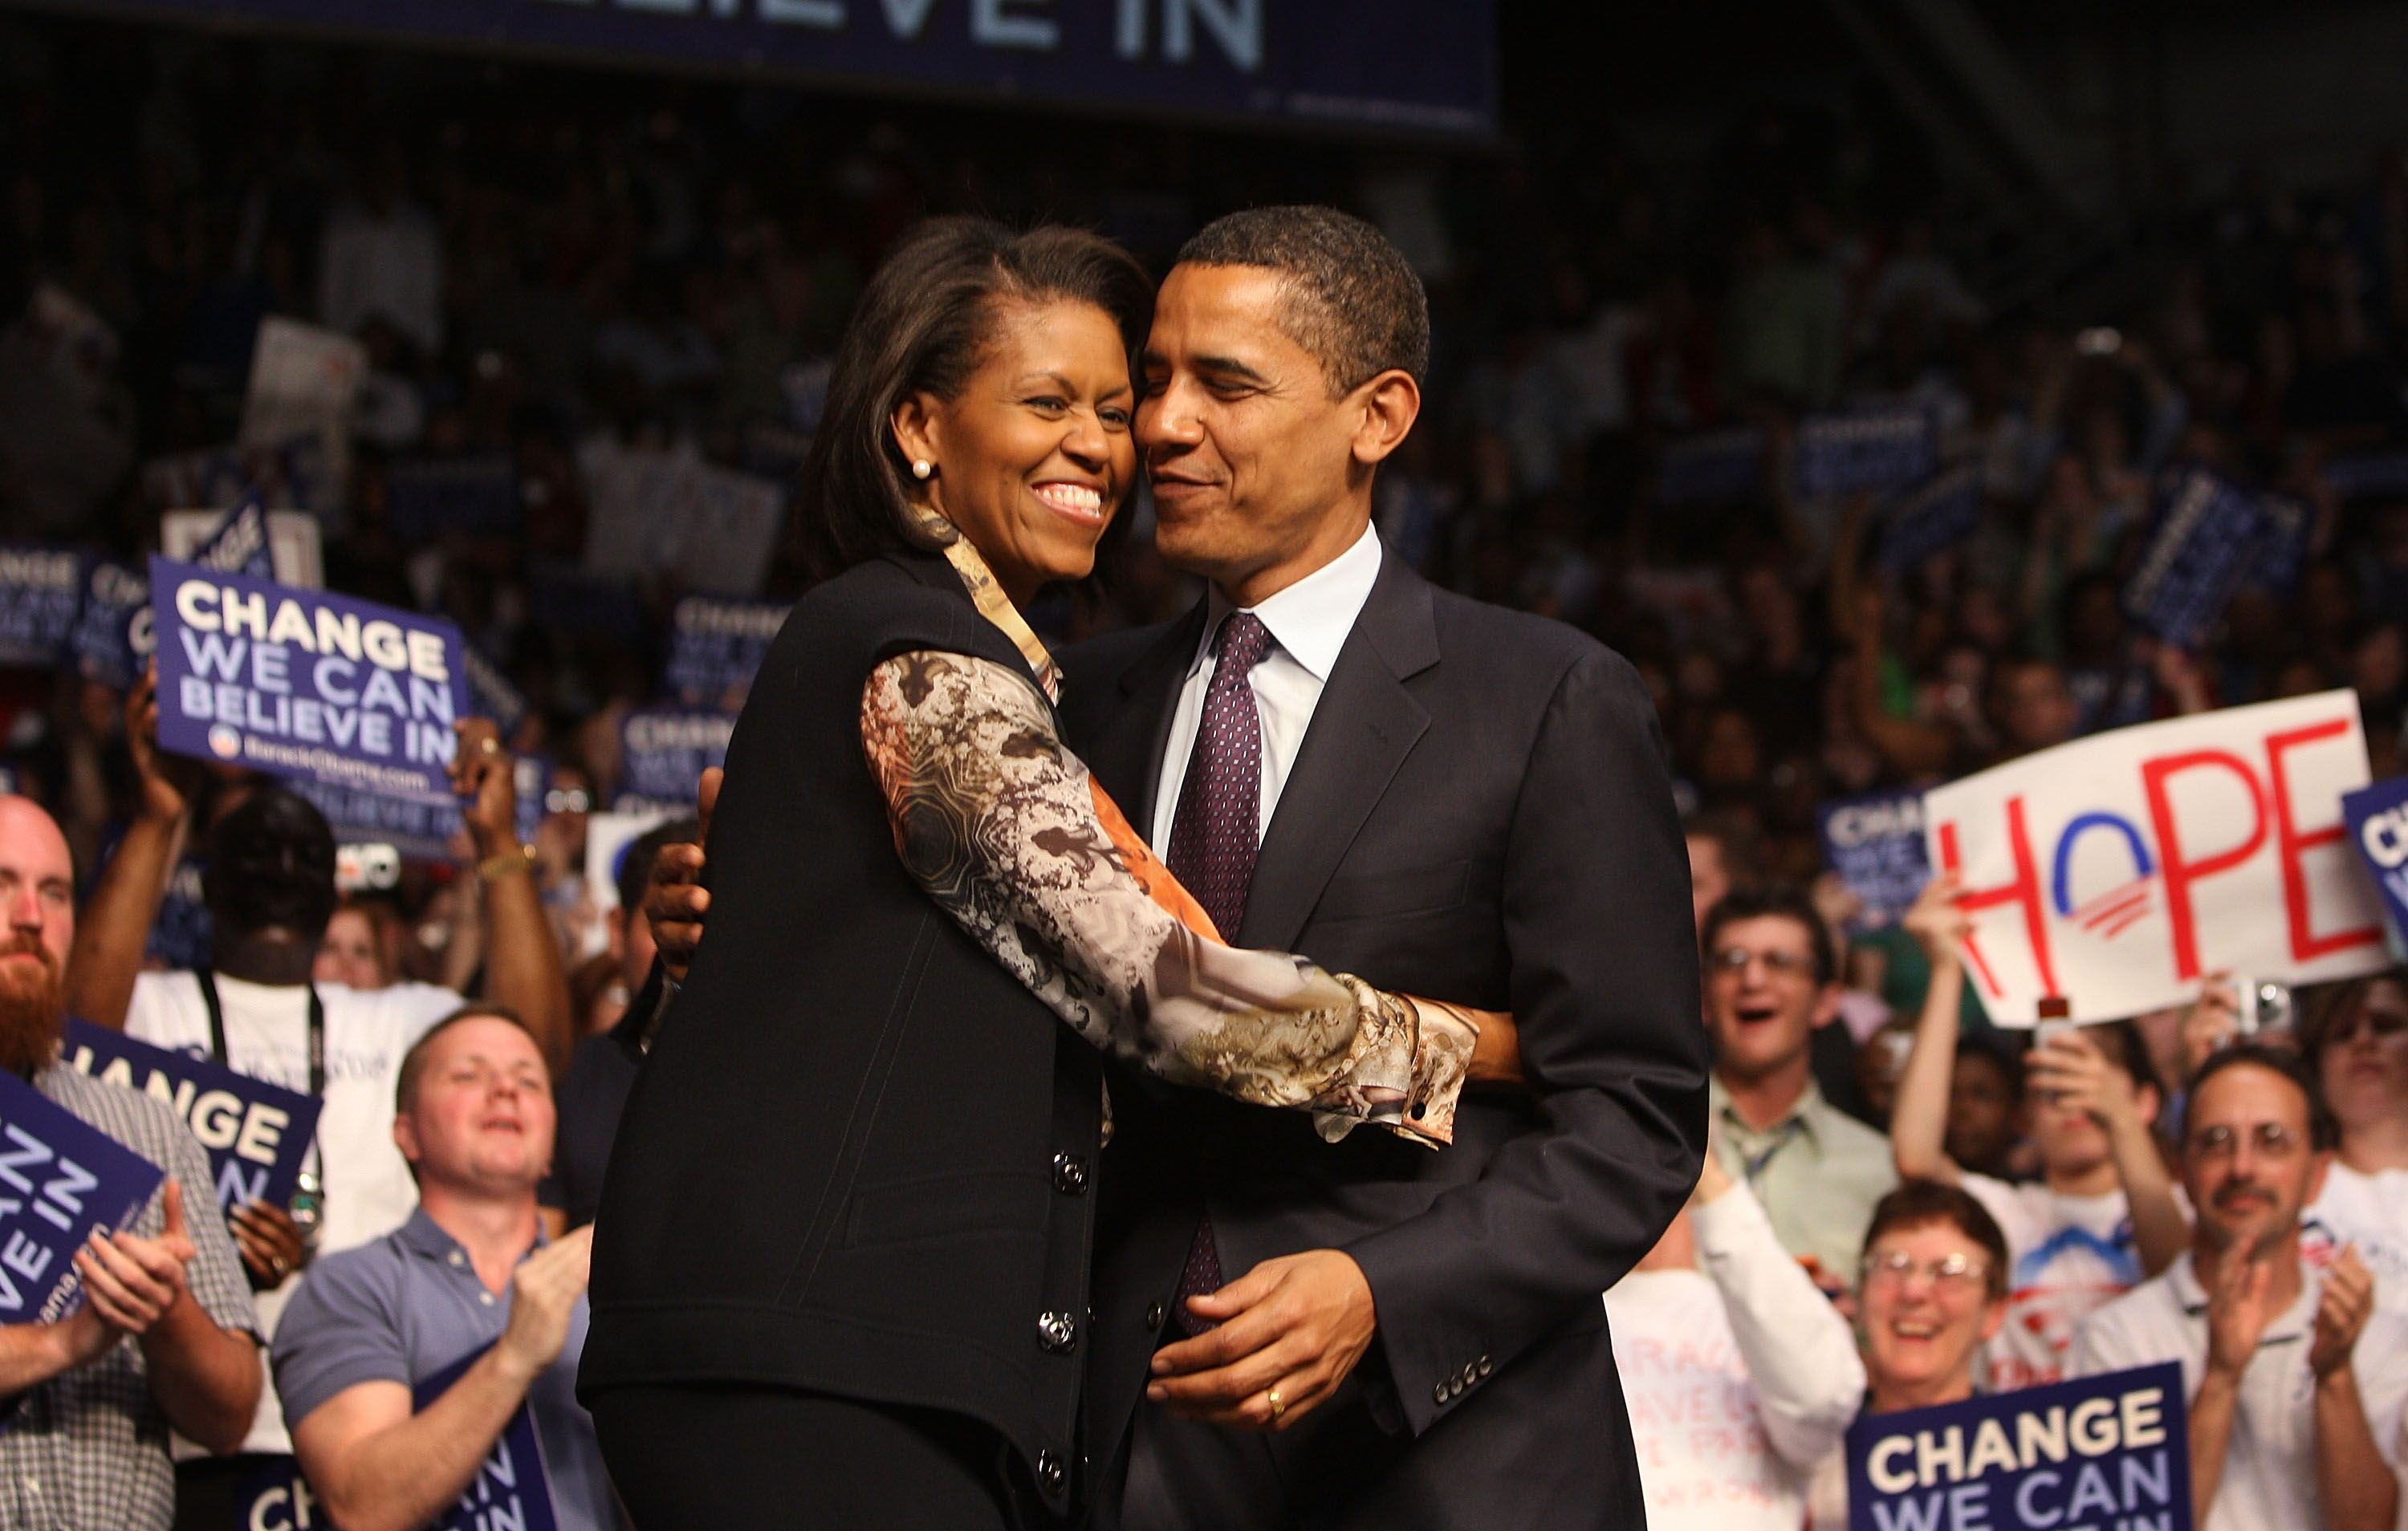 Barack Obama and Michelle Obama embrace each other at a rally April 22, 2008 in Evansville, Indiana. | Source: Getty Images